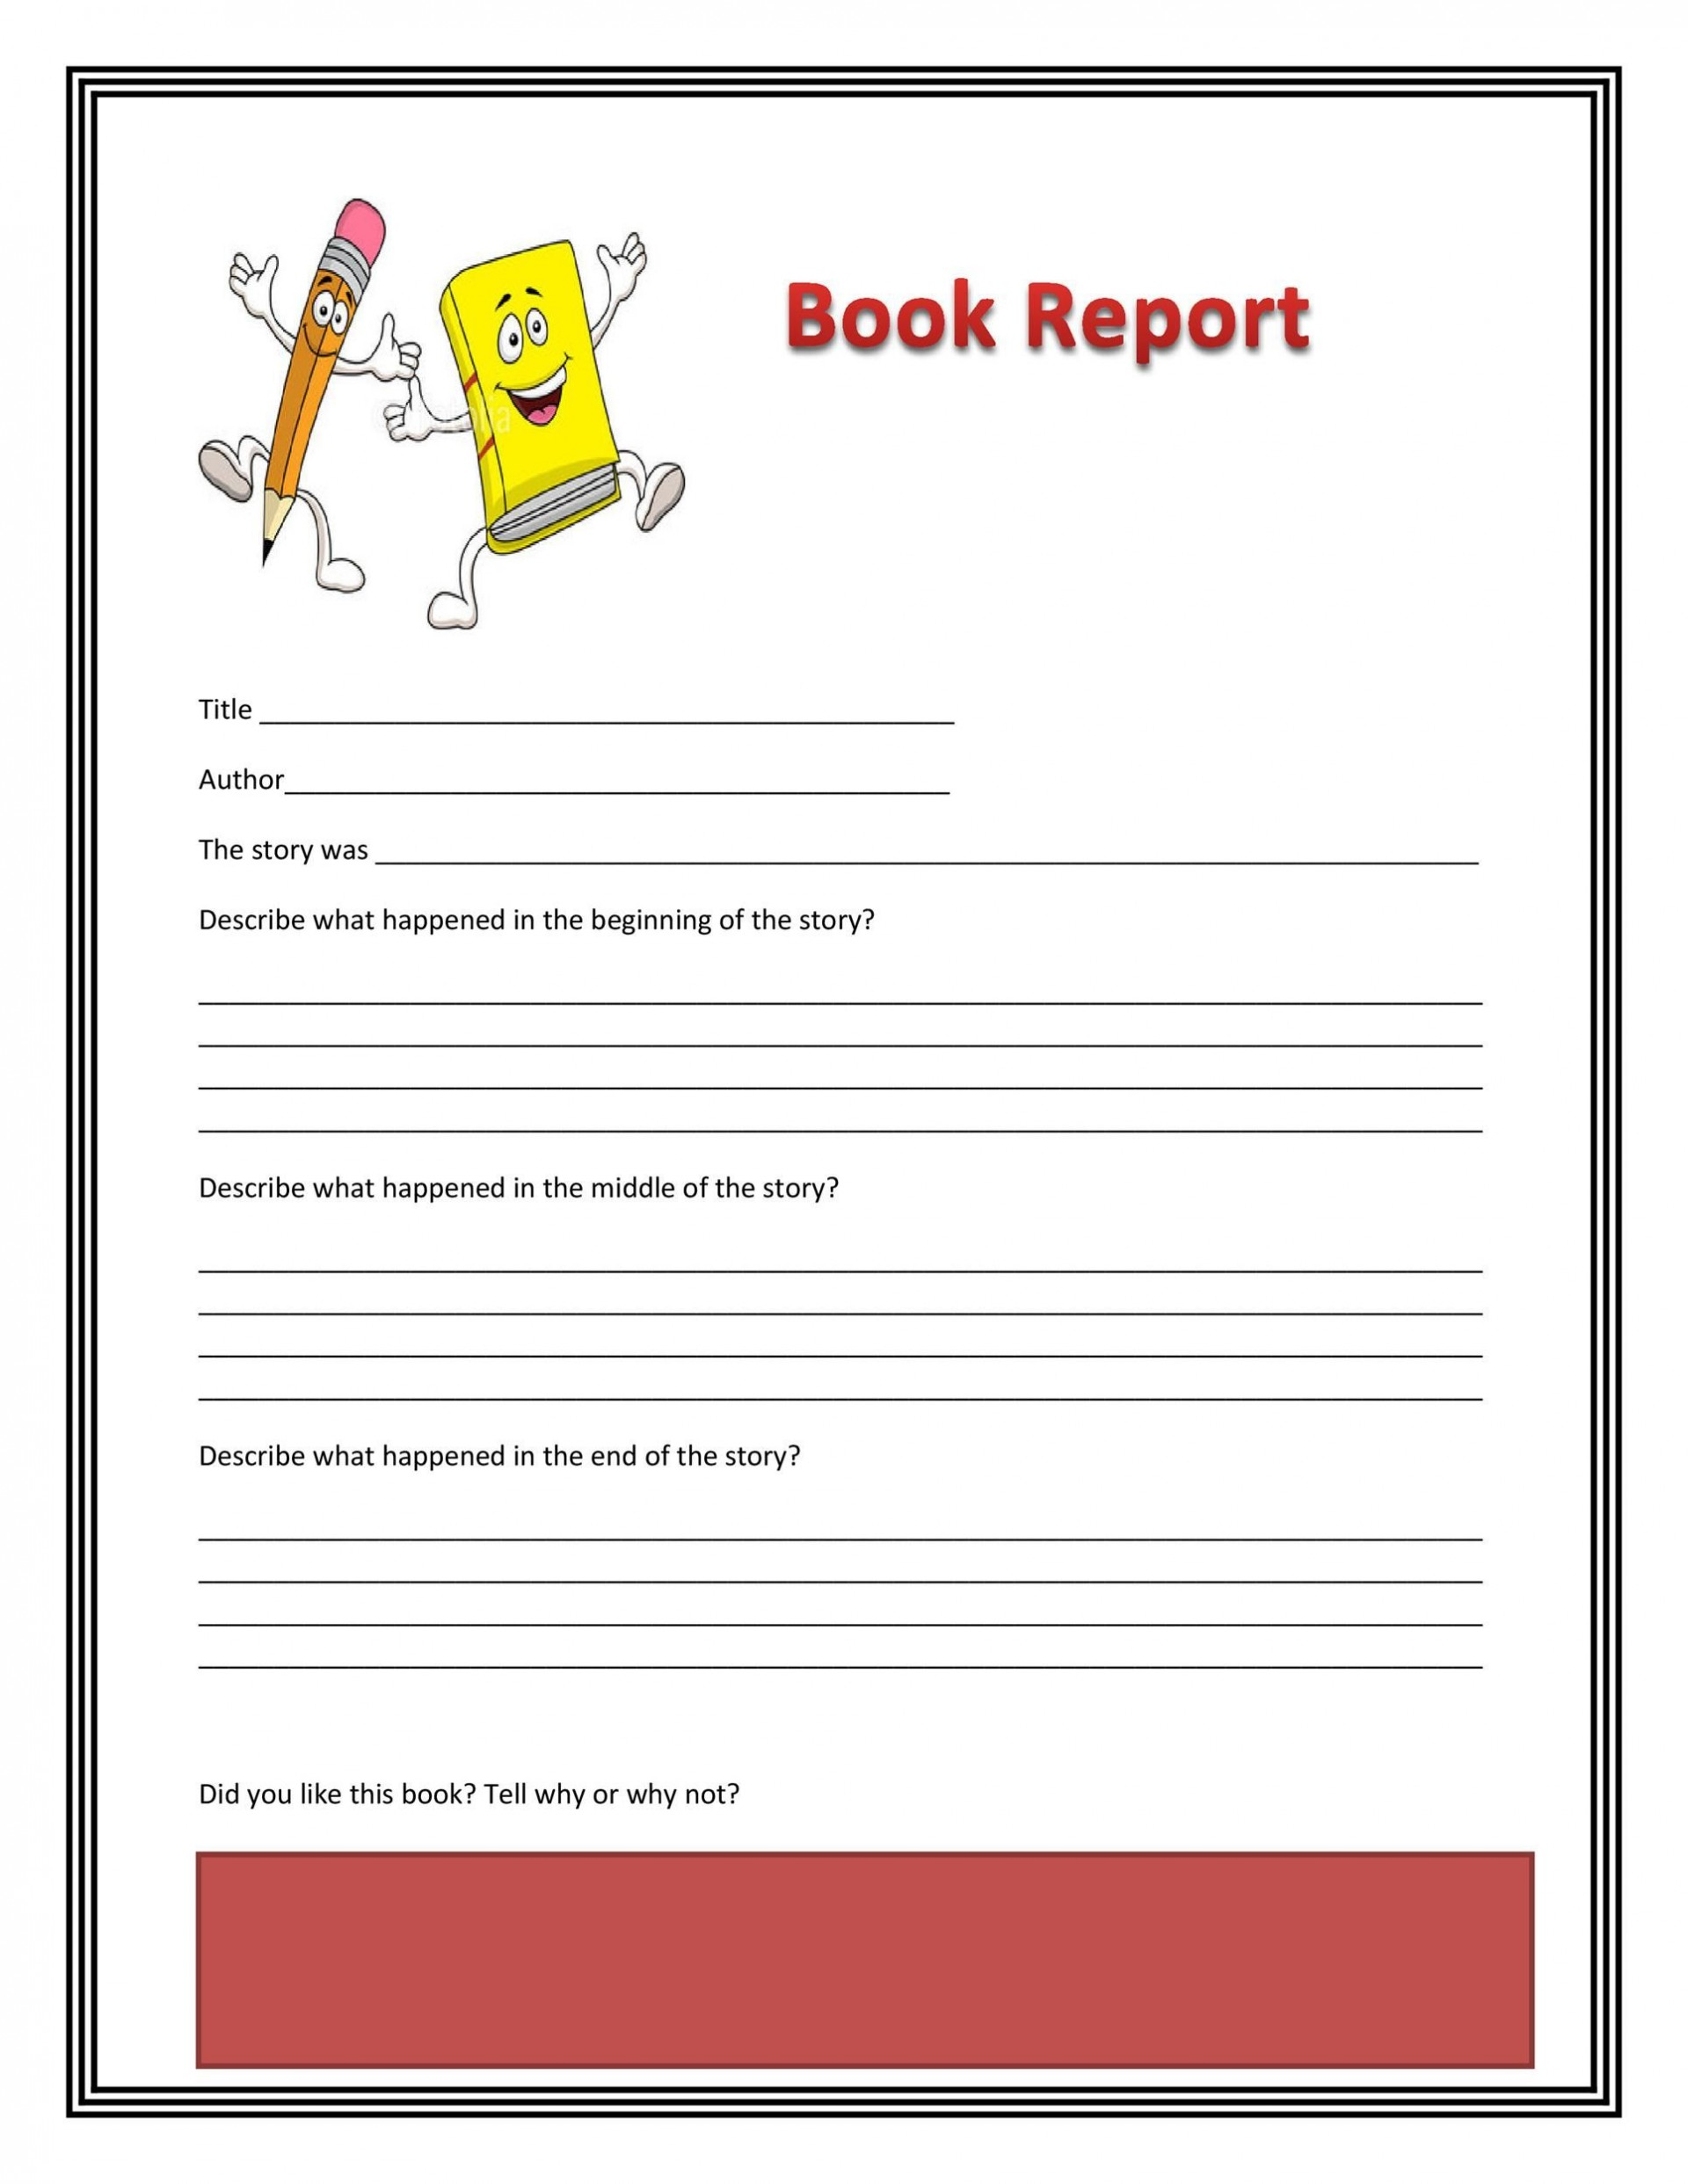 003 Stunning Free Printable Book Report Template For 6th Grade Photo 1920